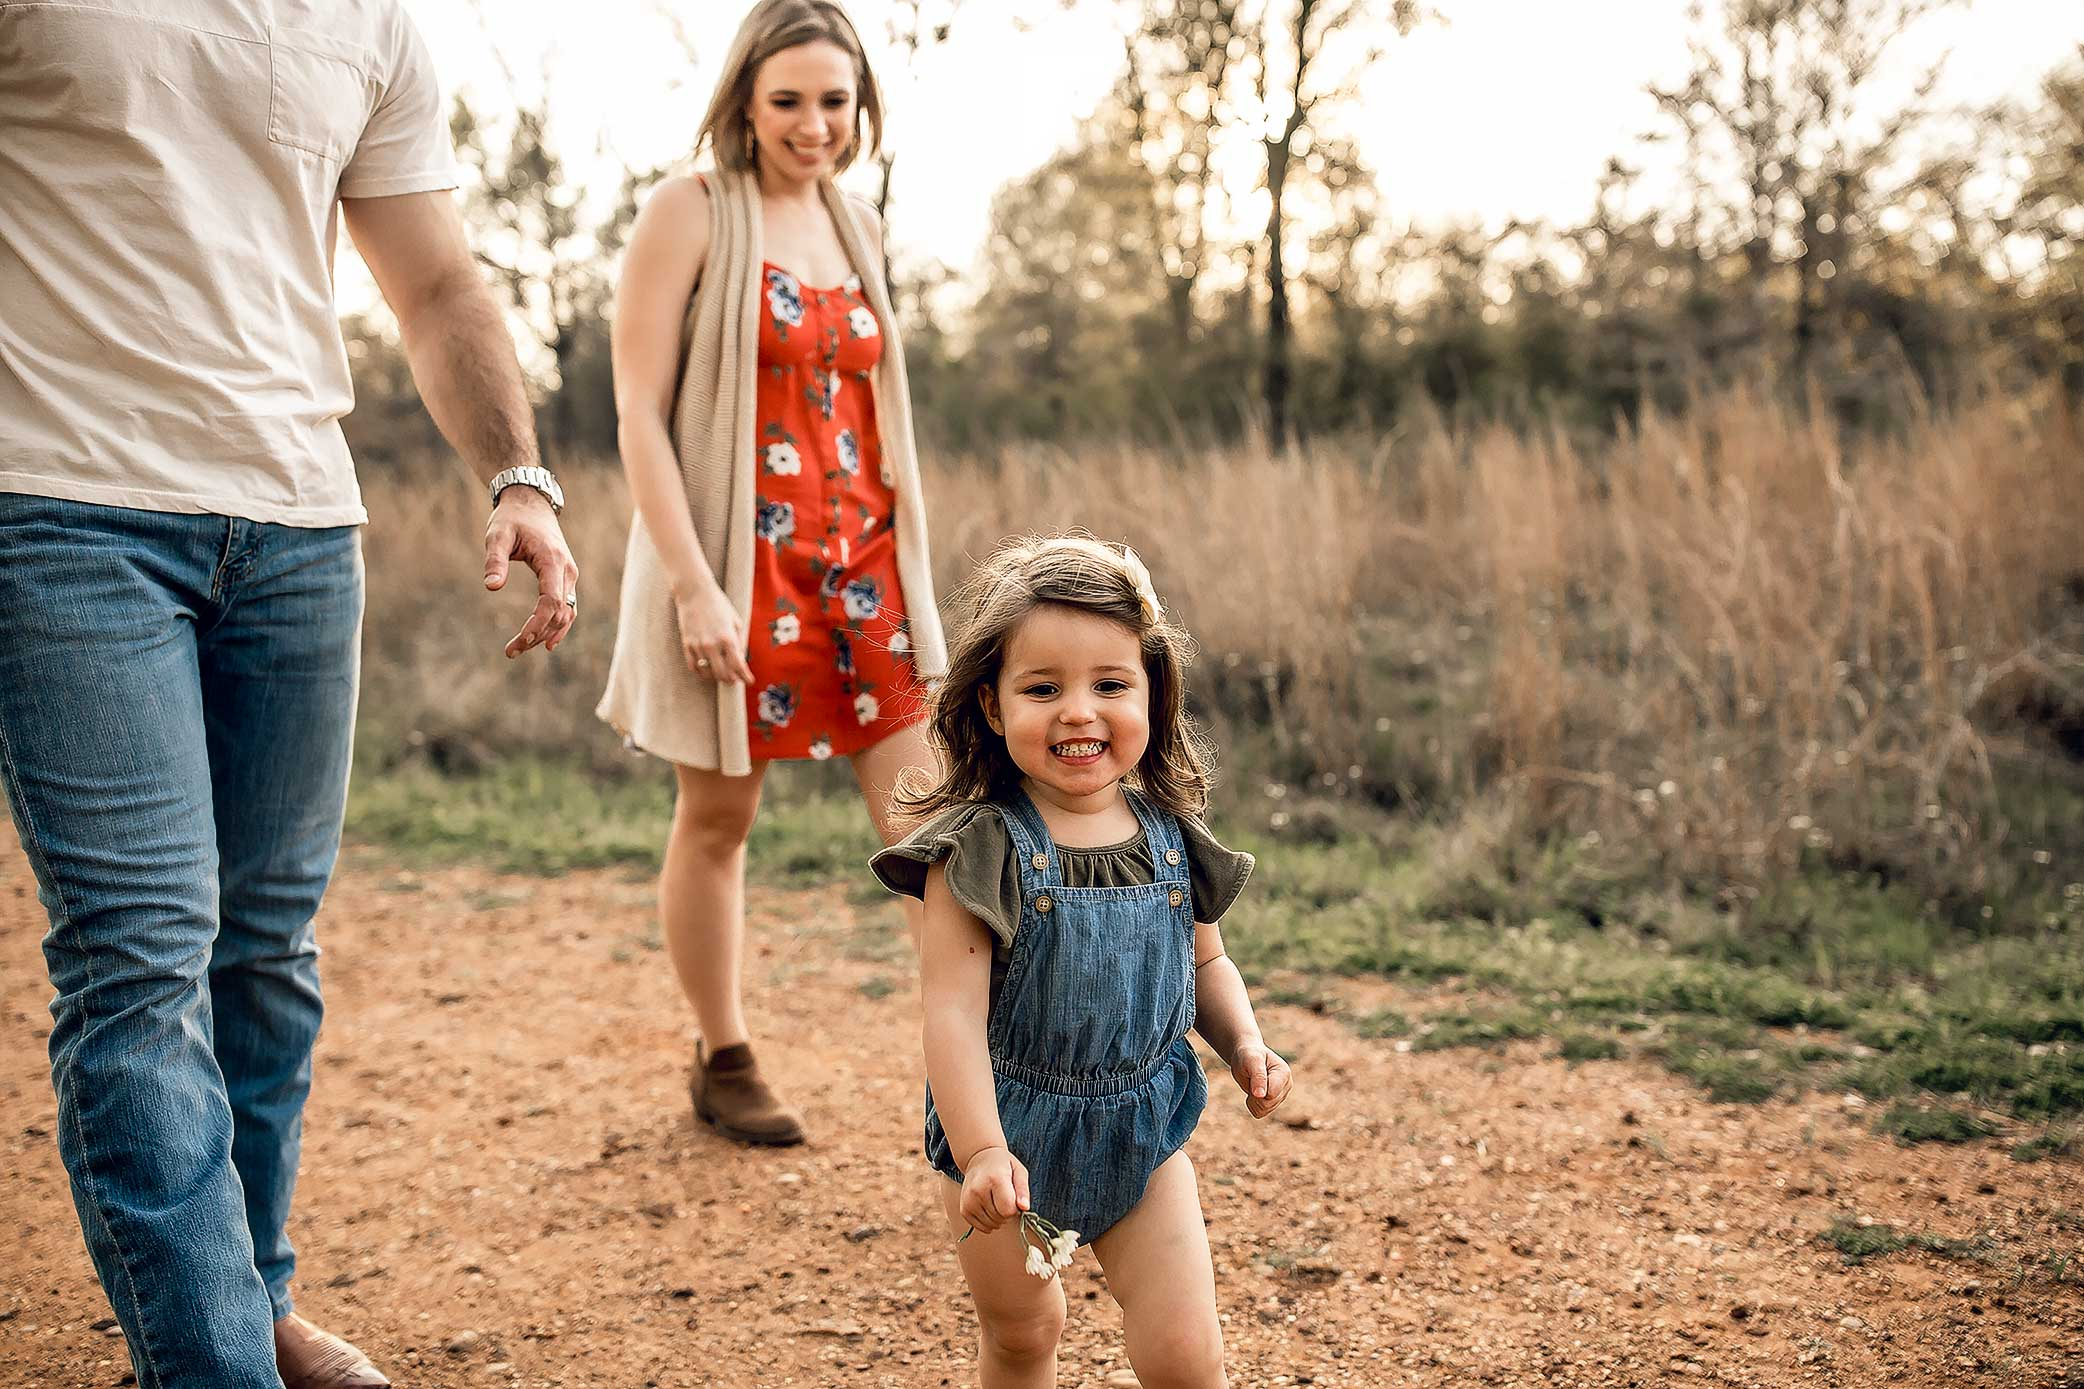 shelby-schiller-photography-sunset-family-pictures-spring-2019-26.jpg